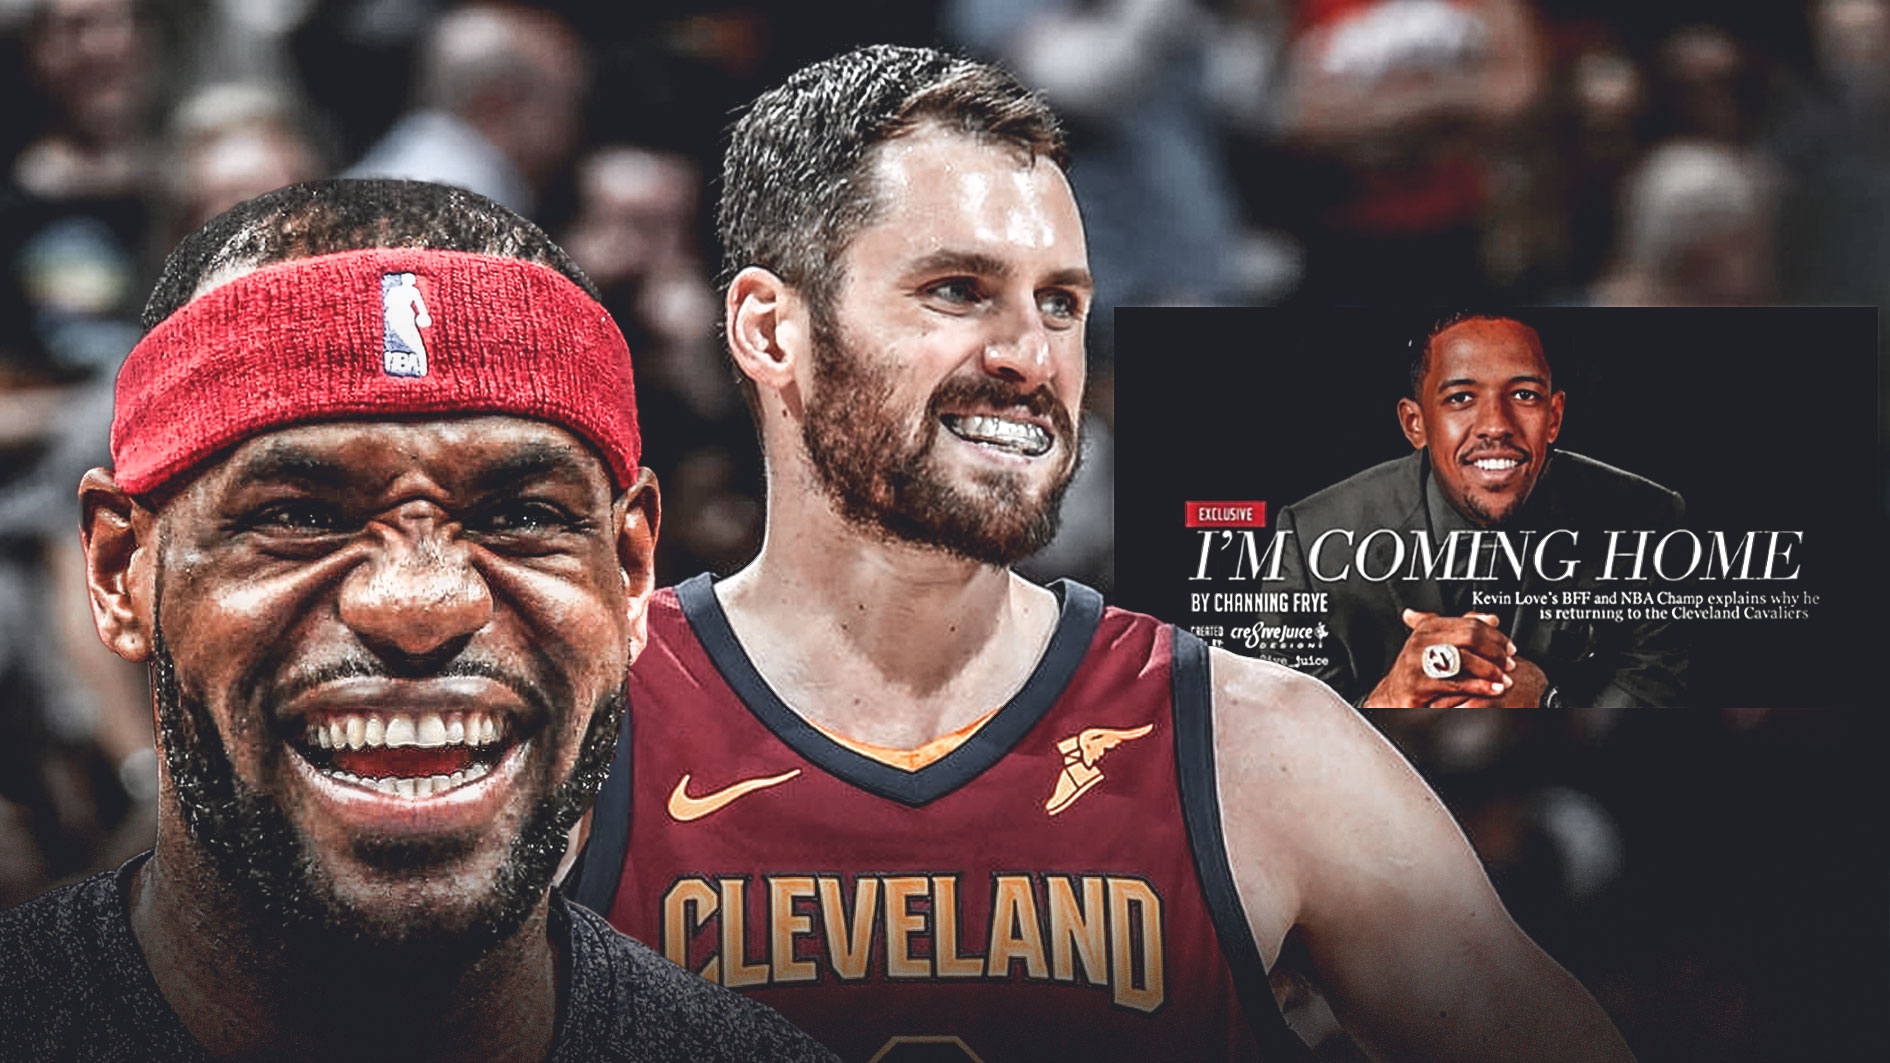 LeBron James Kevin Love Channing Frye